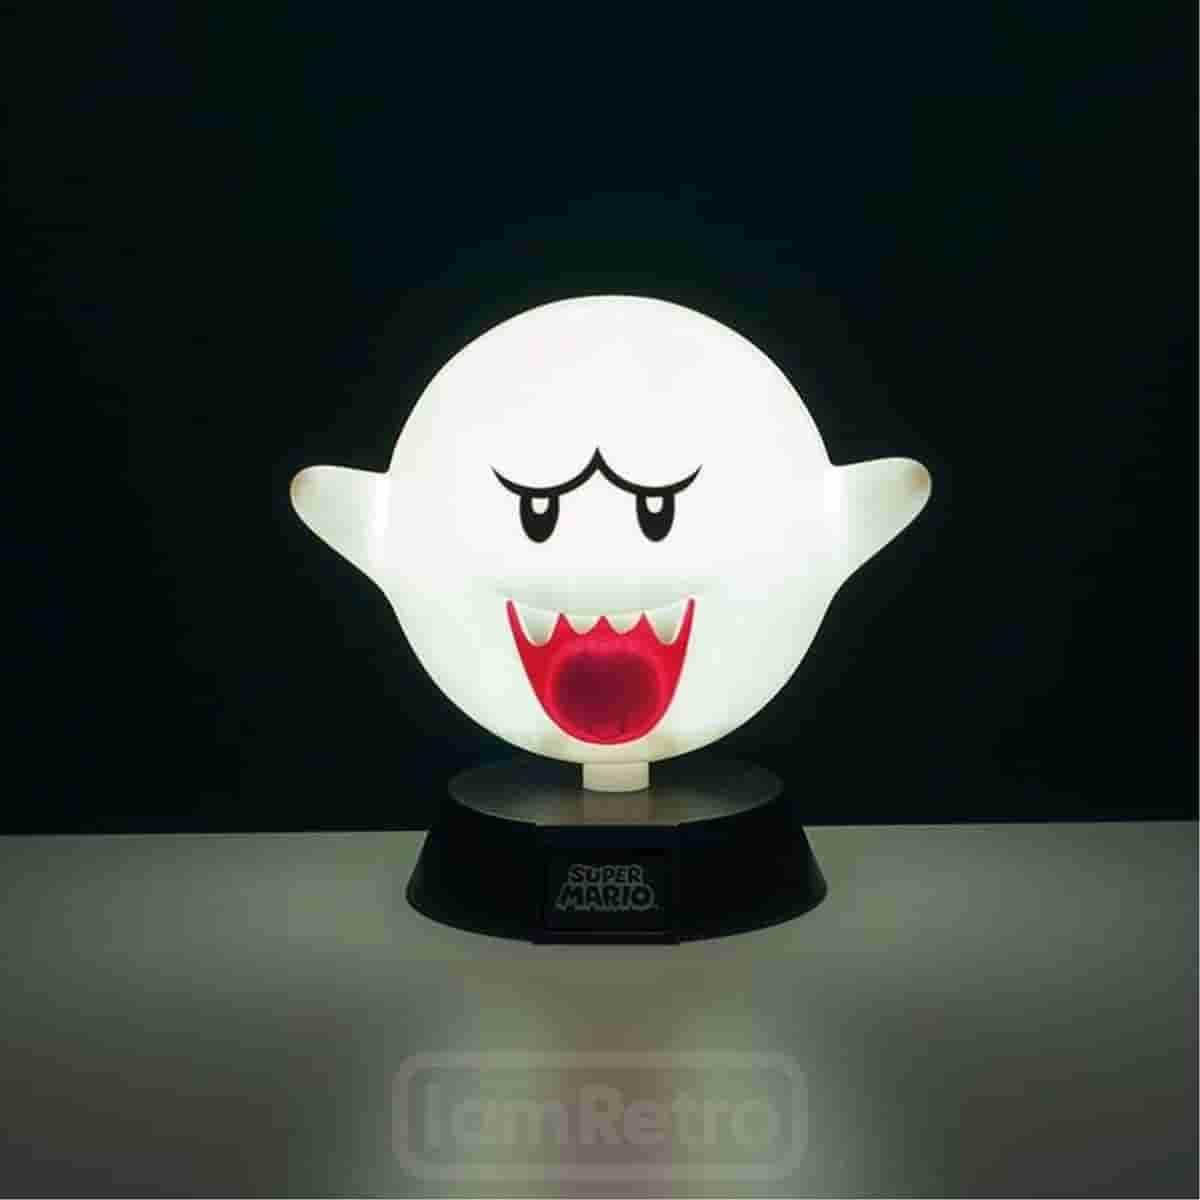 Super Mario: Boo Light Officially Licensed Nintendo Merchandise - IamRetro.com